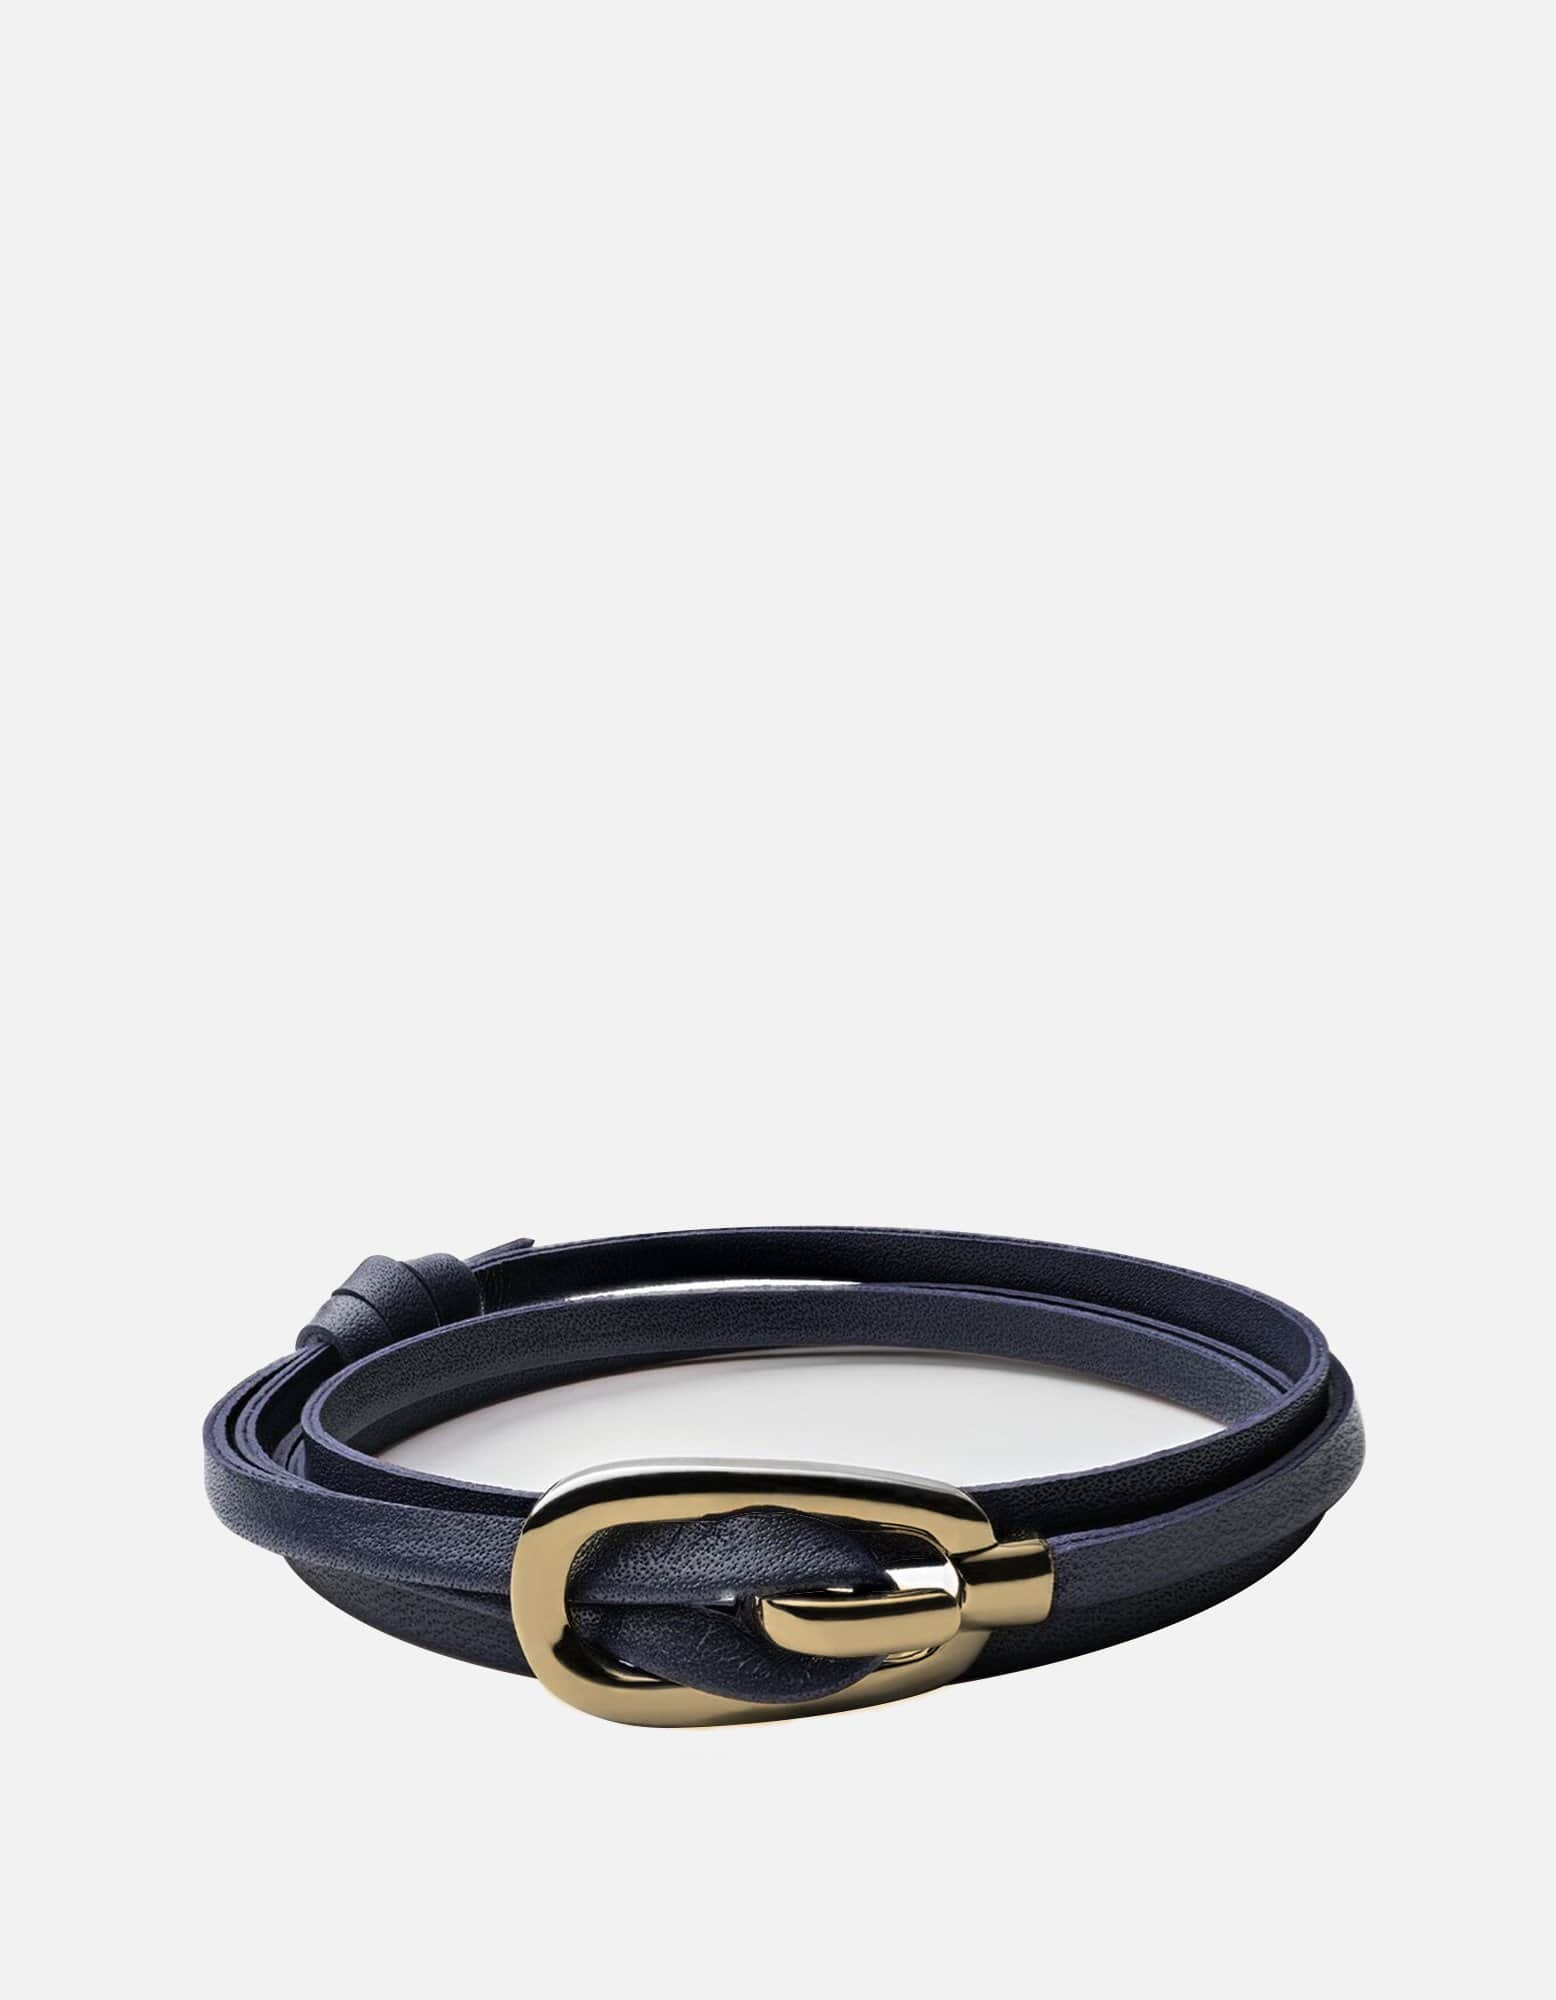 Miansai - New Gamle Leather Bracelet, Gold Plated